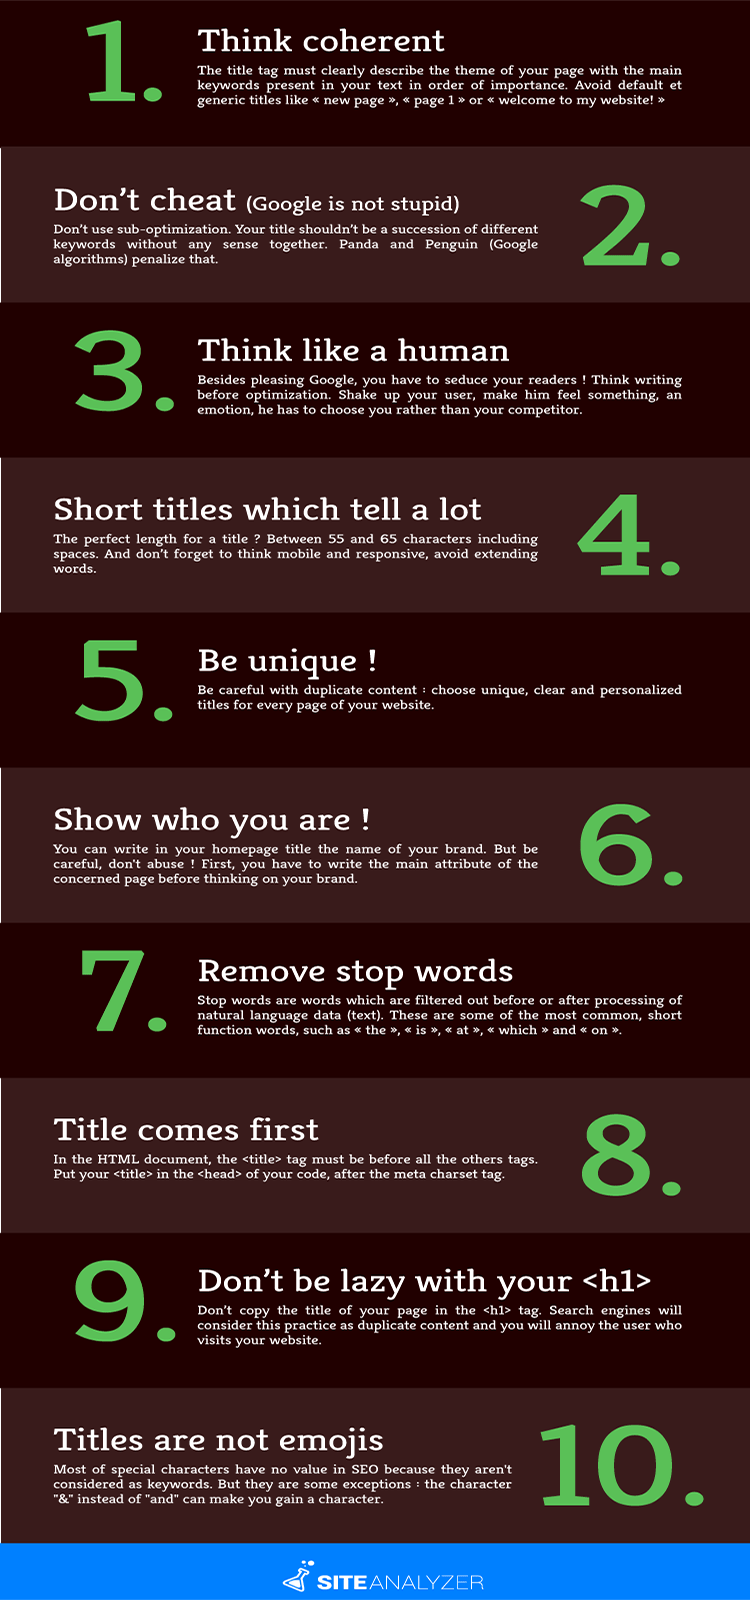 quality content writing and proper page titles for developing websites